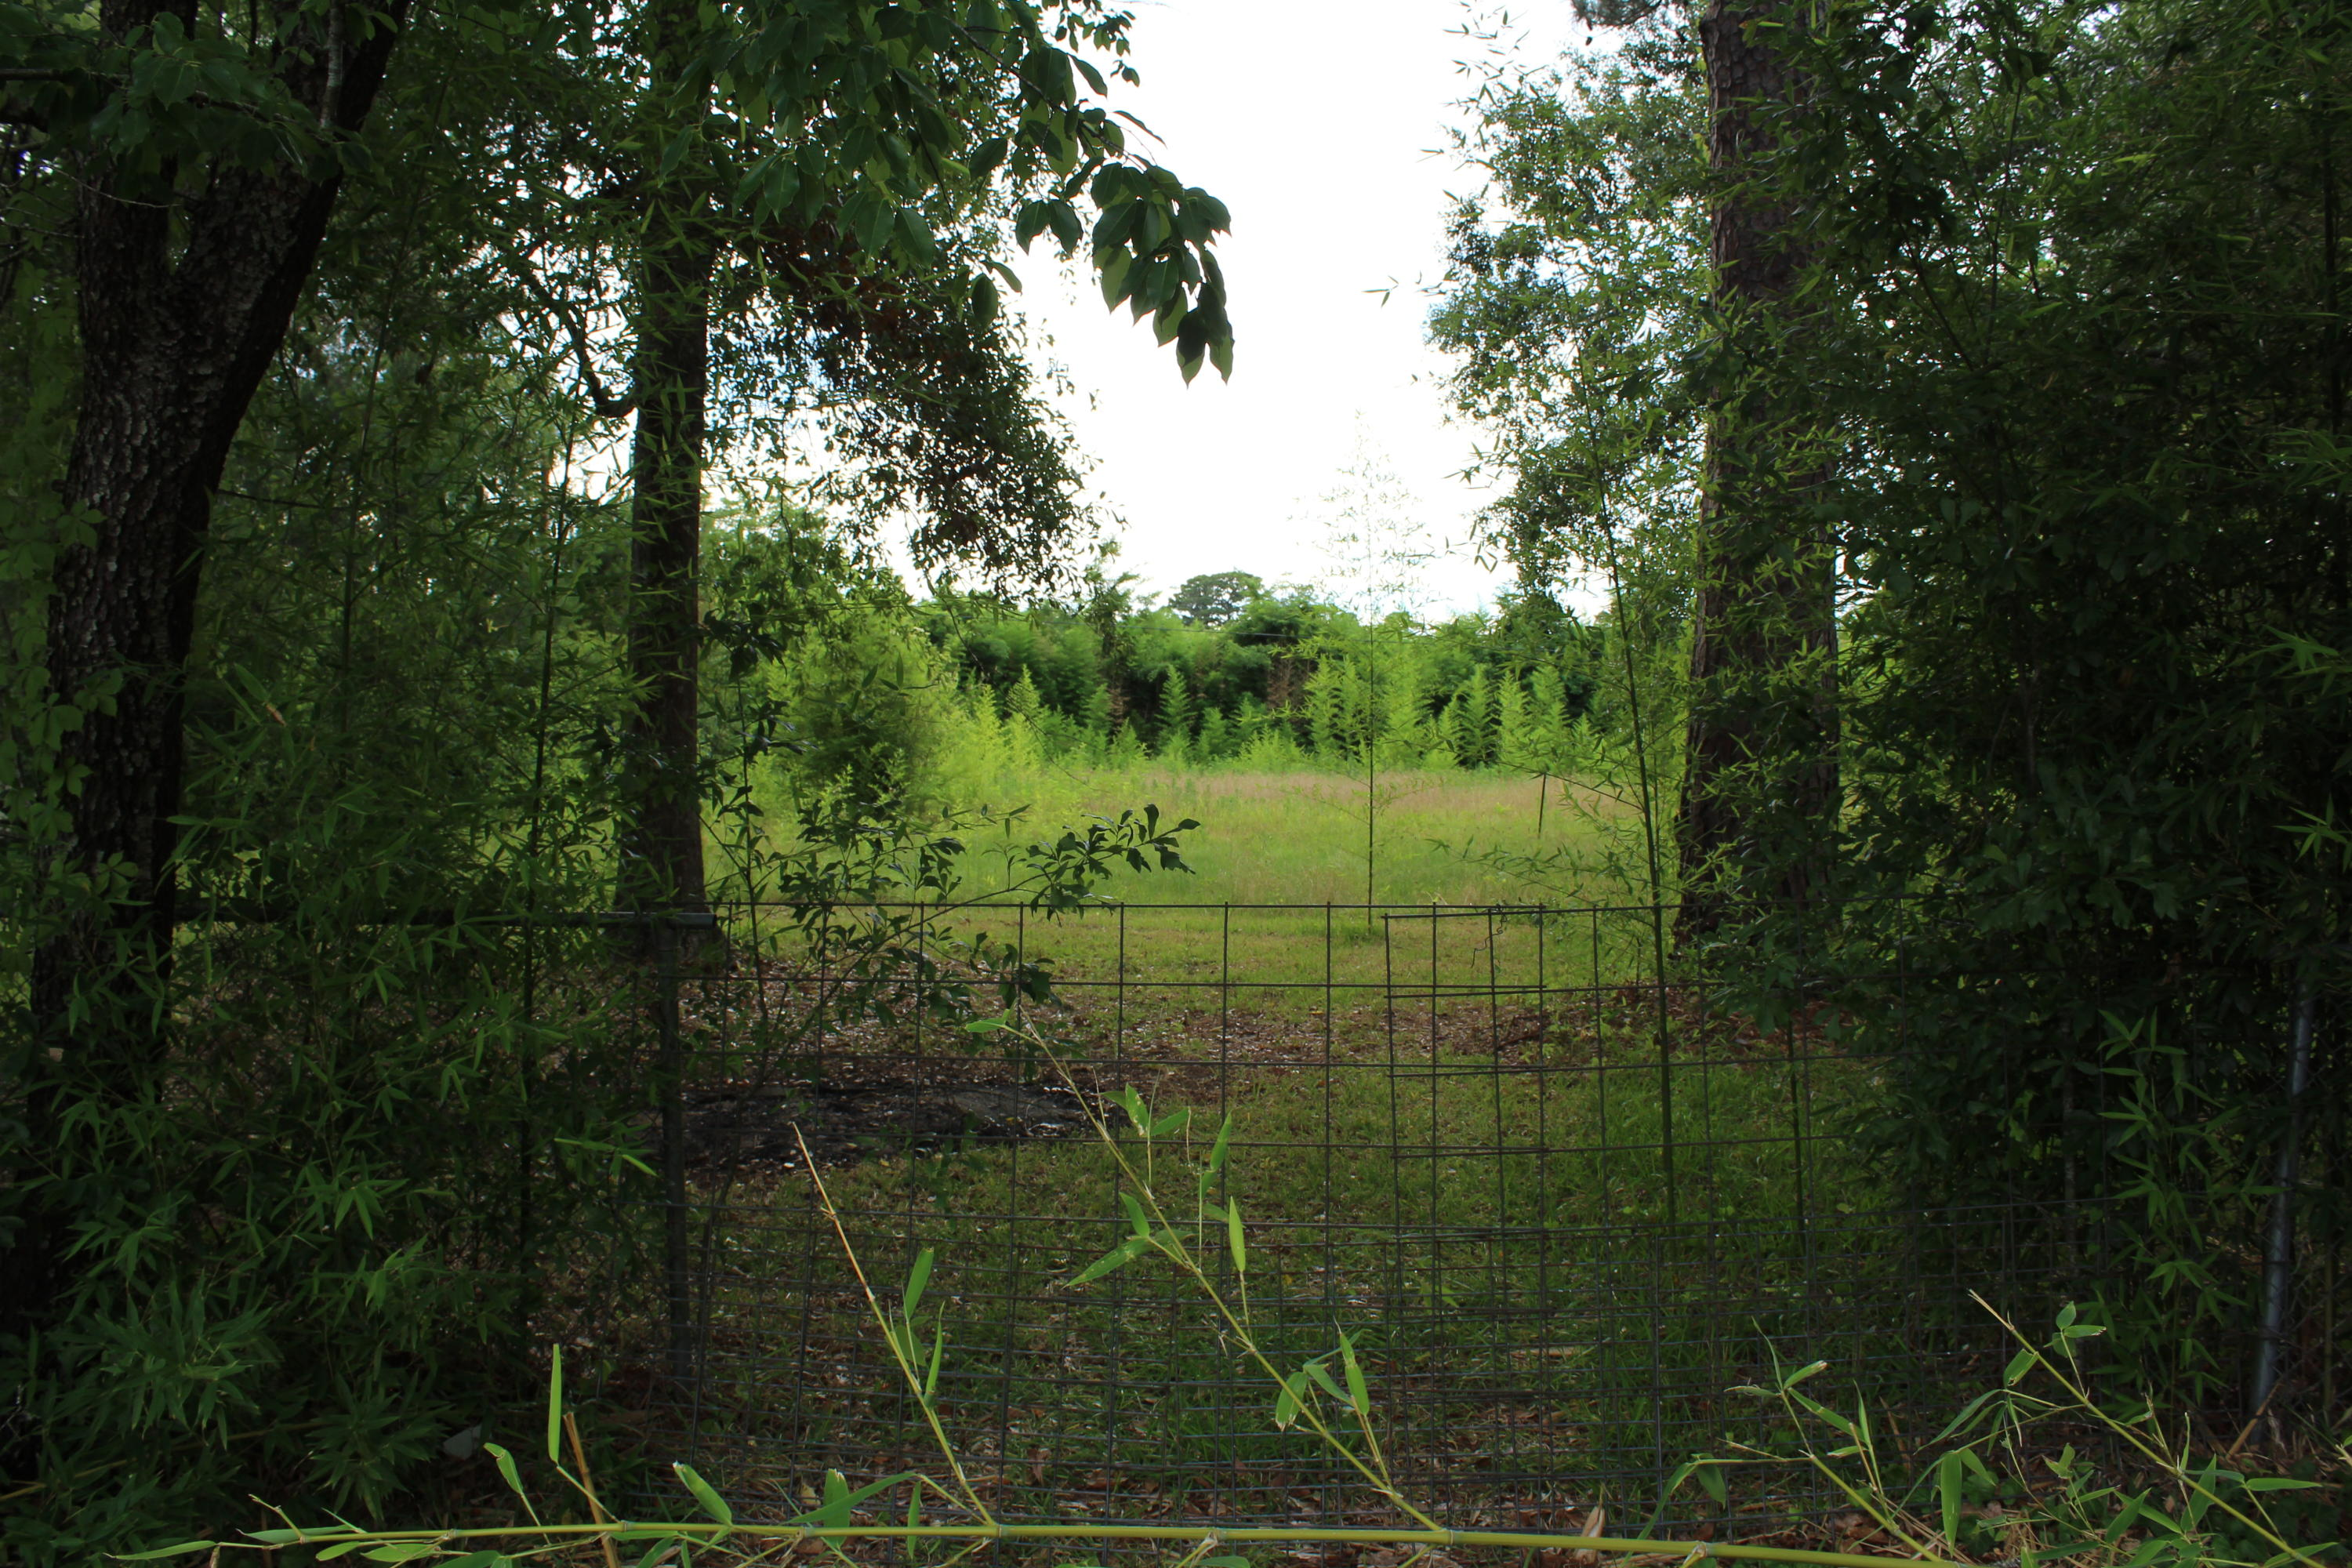 DeRidder land for sale,  Lemonte Ave, TBD, DeRidder LA - $25,000